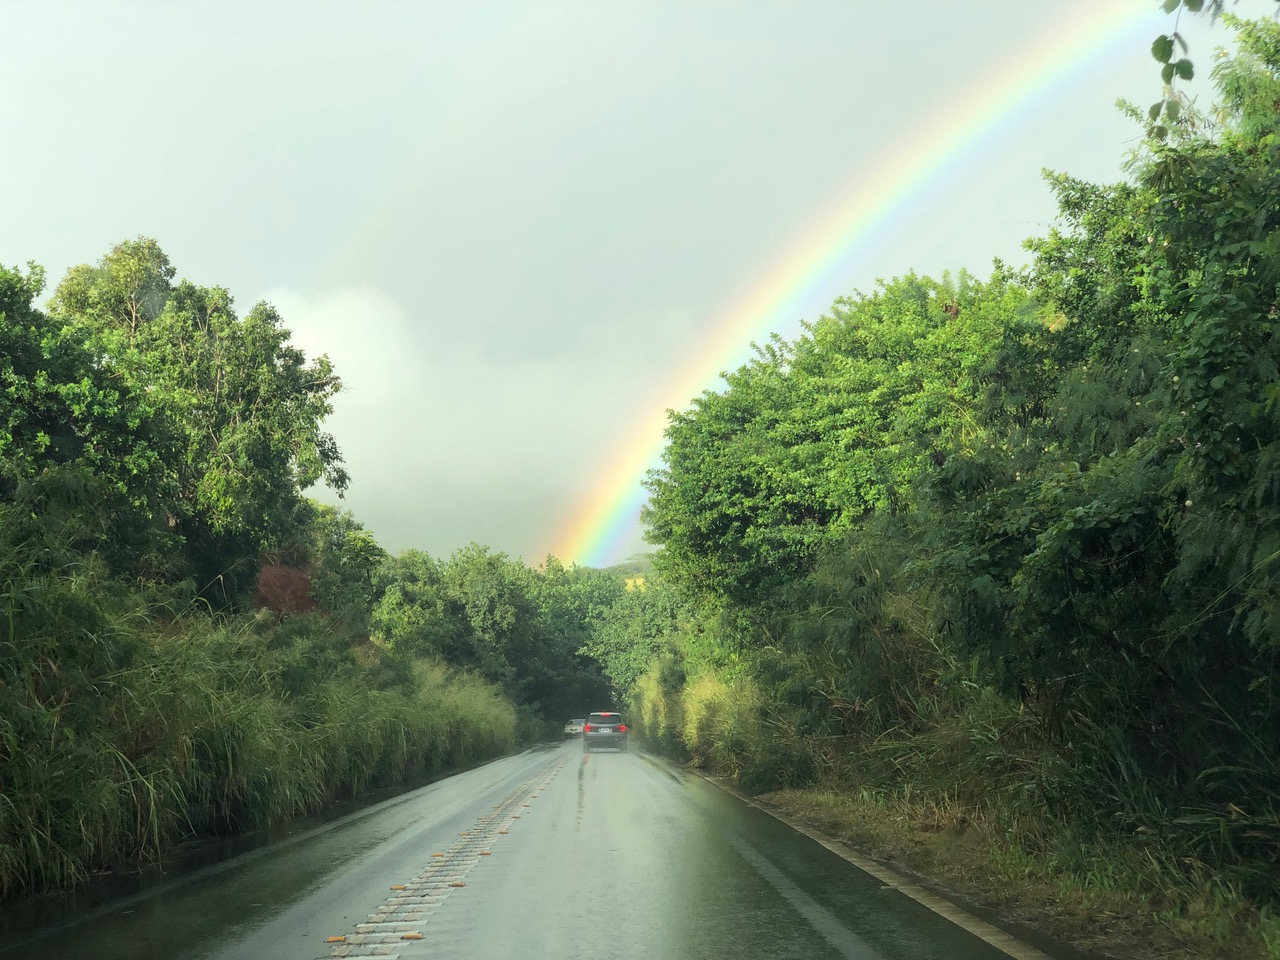 ...even driving along the road trying to get to the sunny south end of Kauai